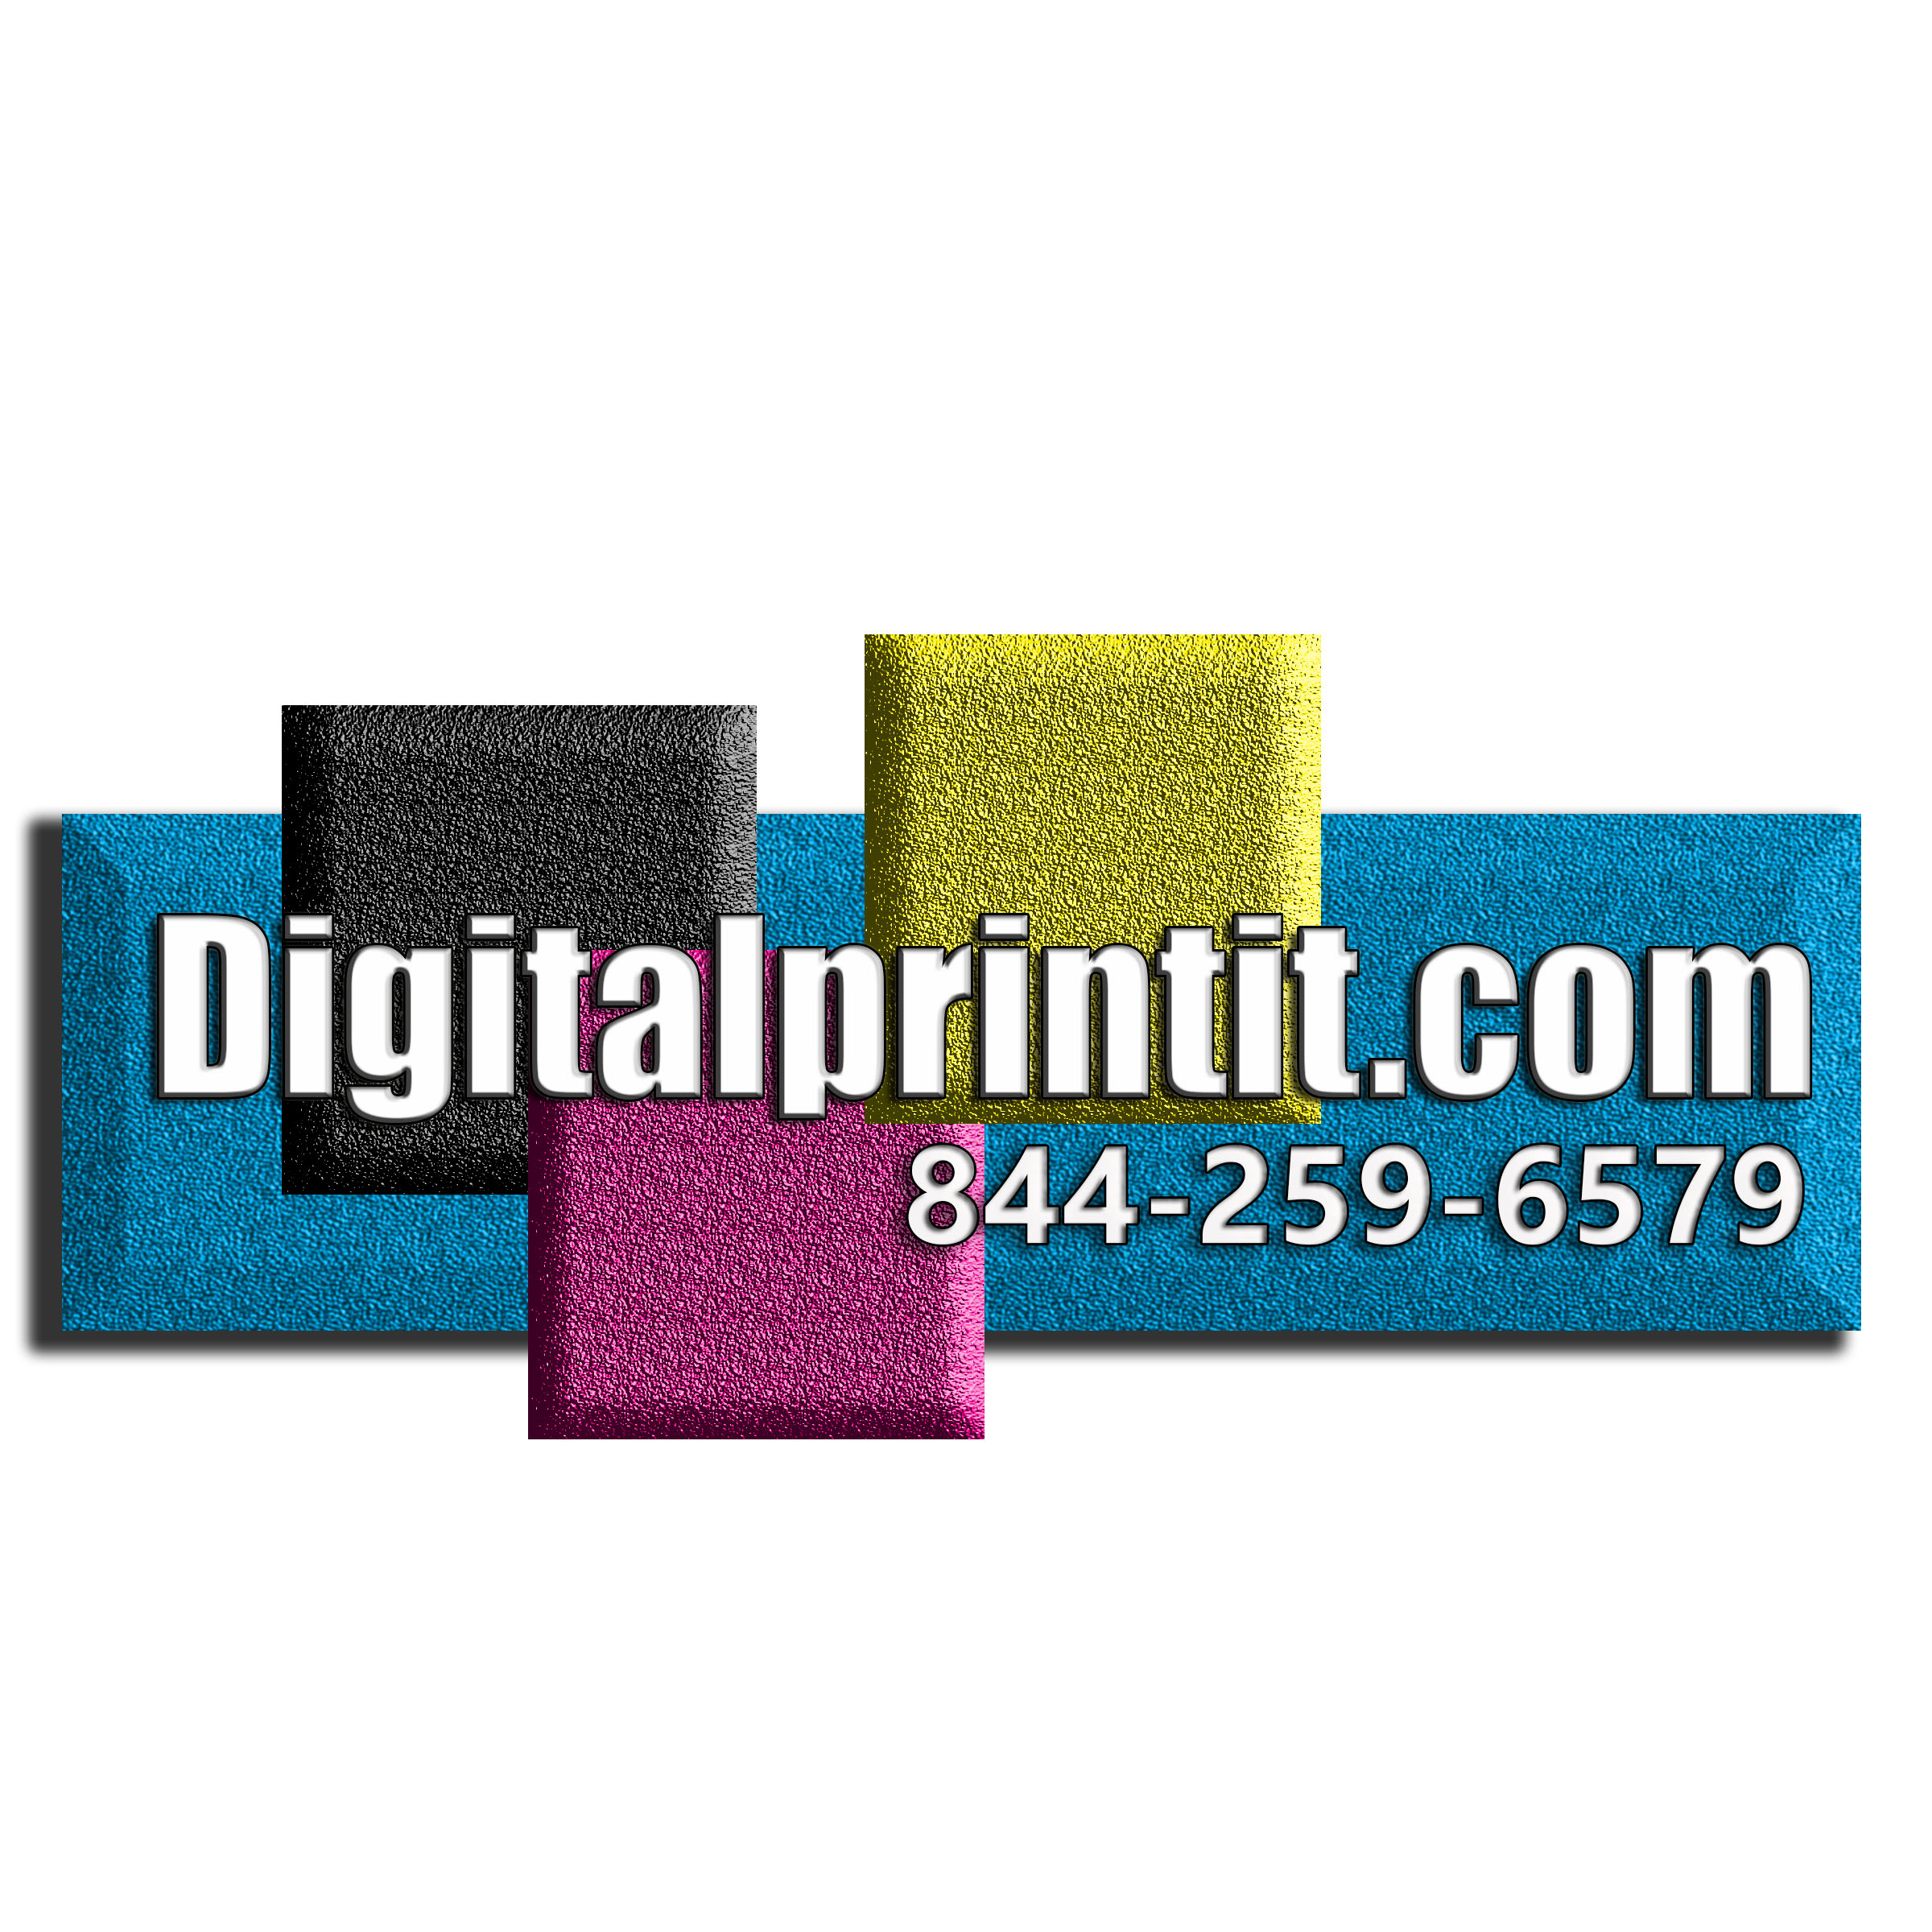 Digital Print It, LLC